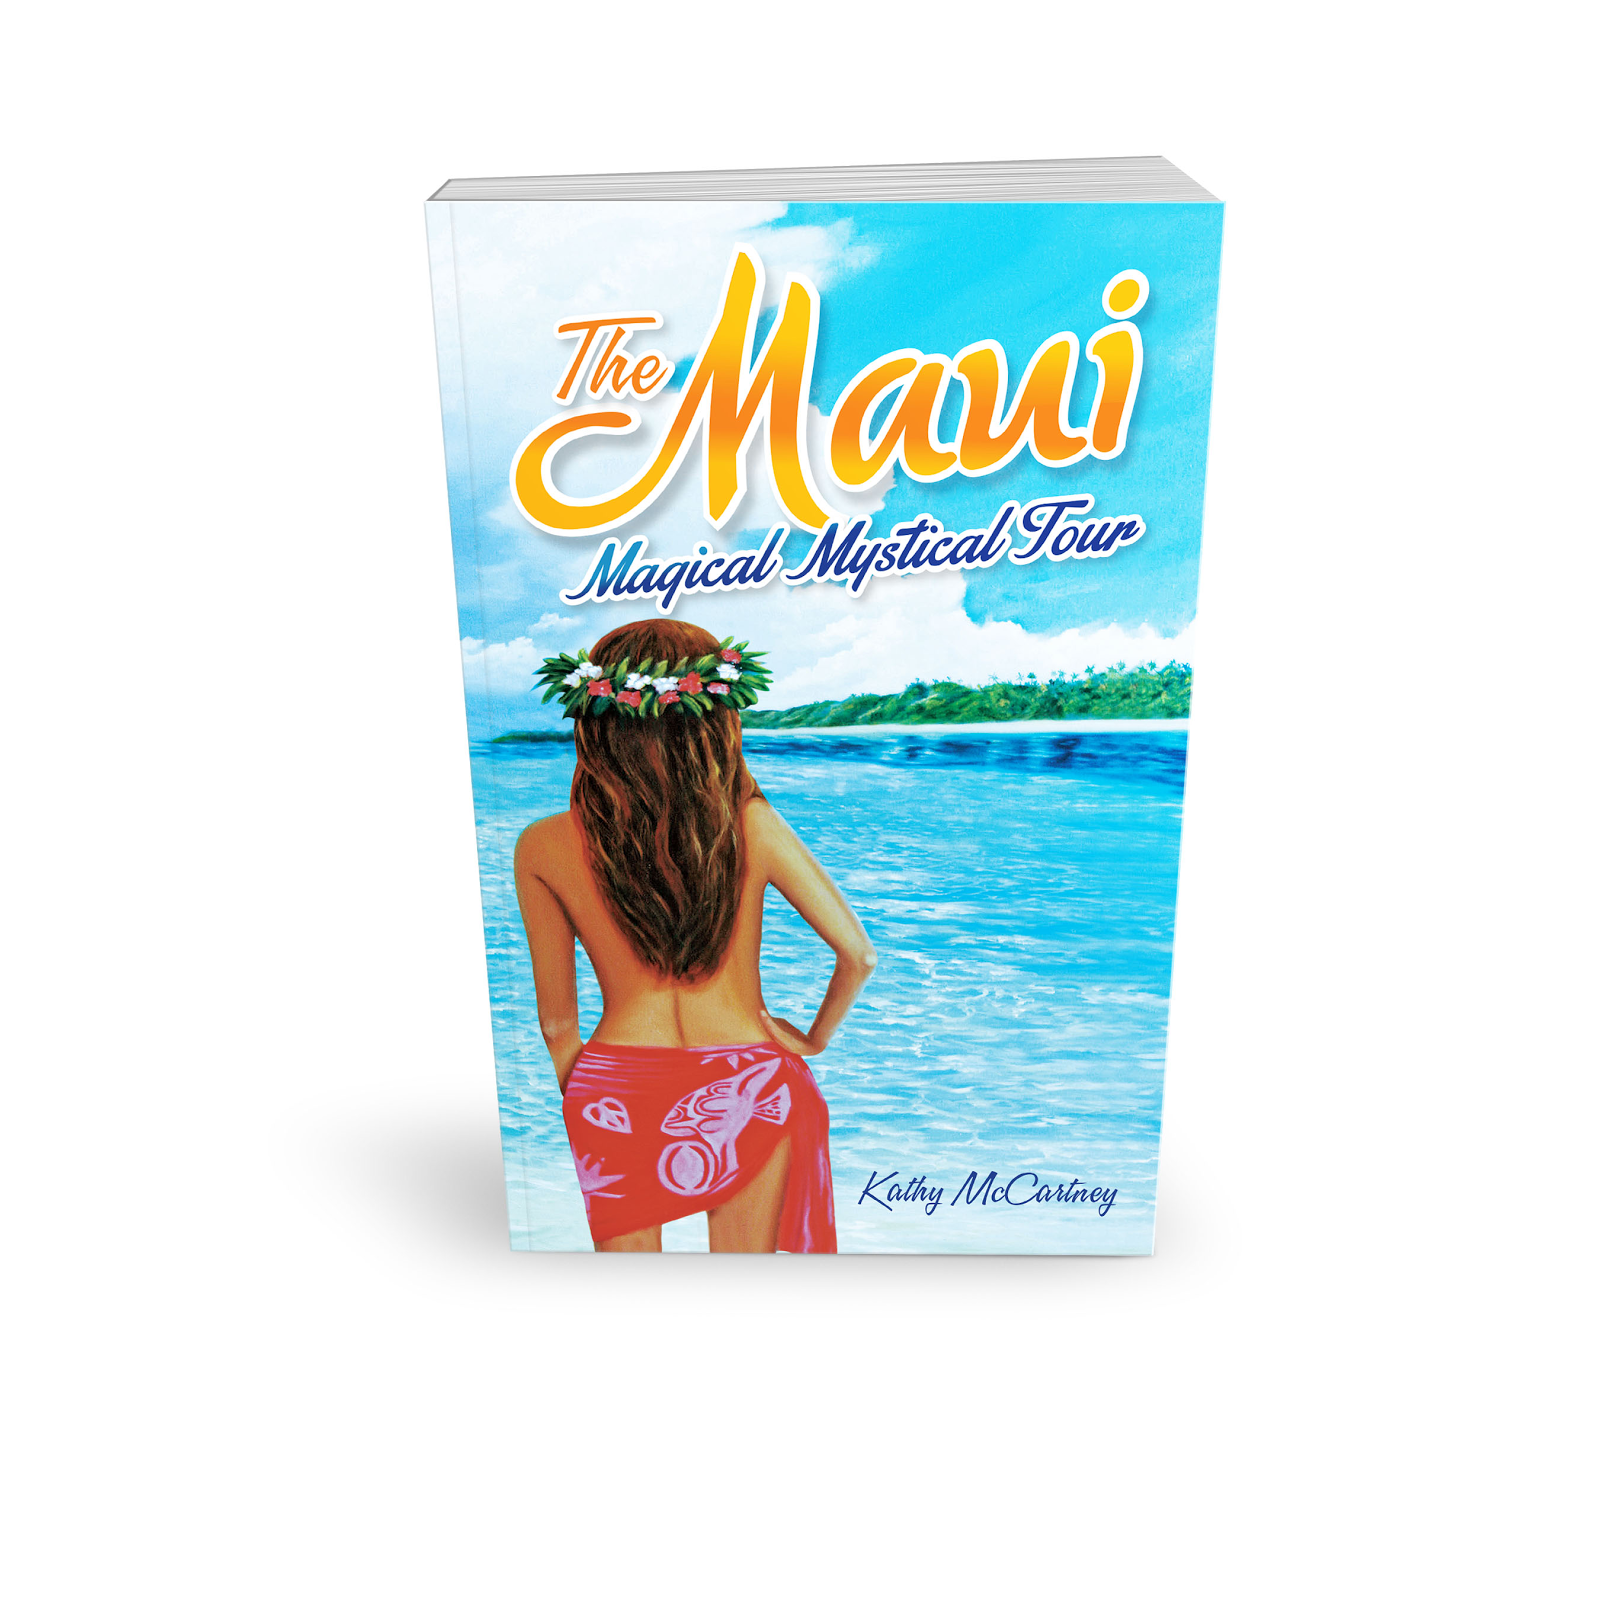 The Maui Magical Mystical Tour by Kathy McCartney